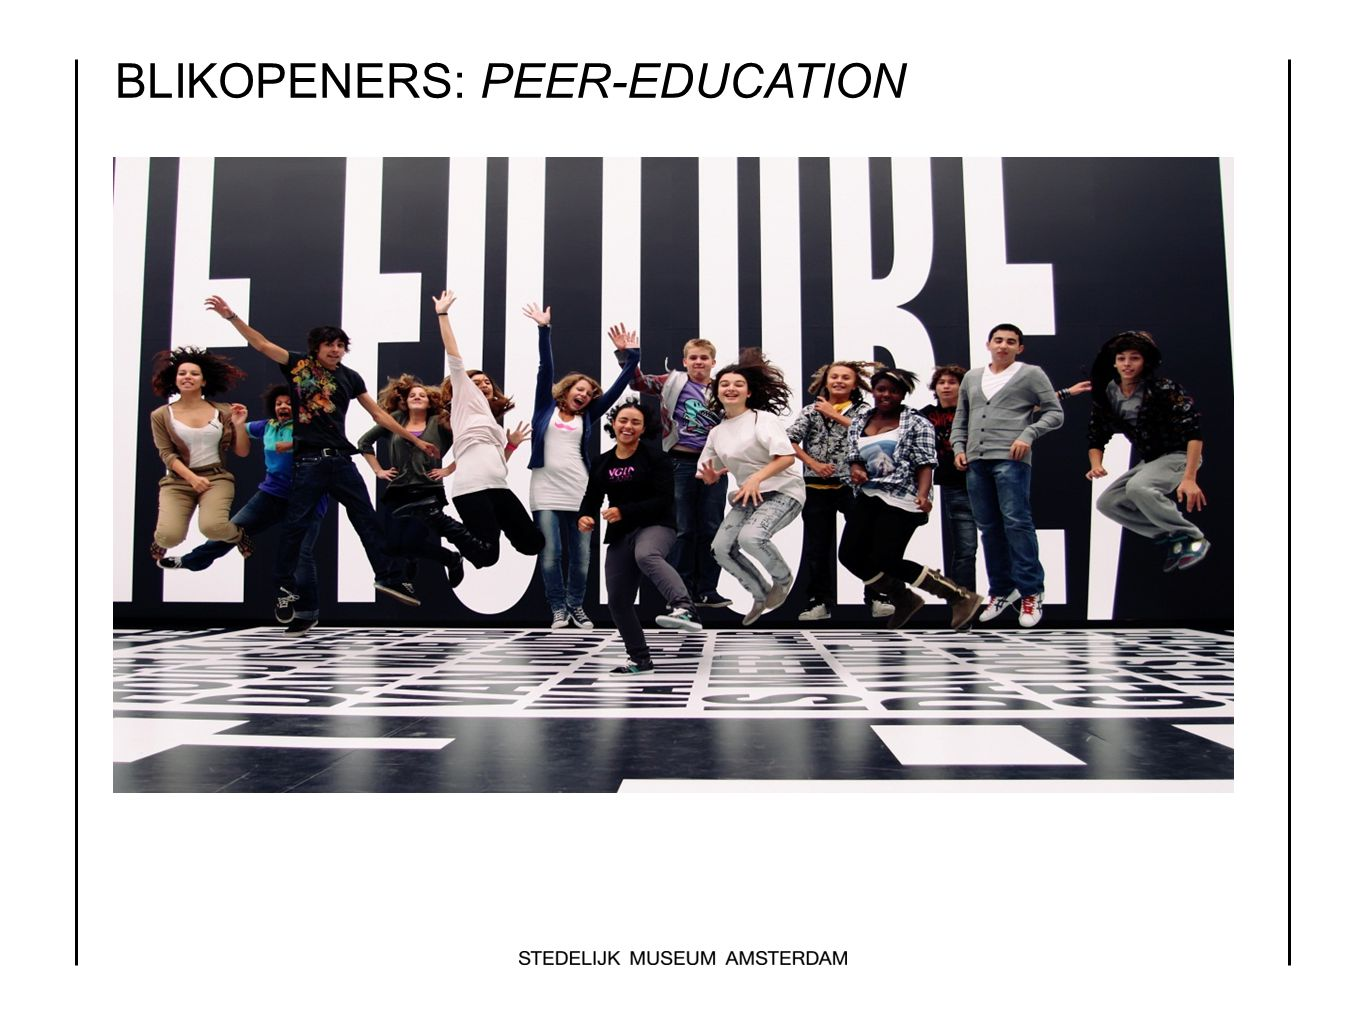 BLIKOPENERS: PEER-EDUCATION